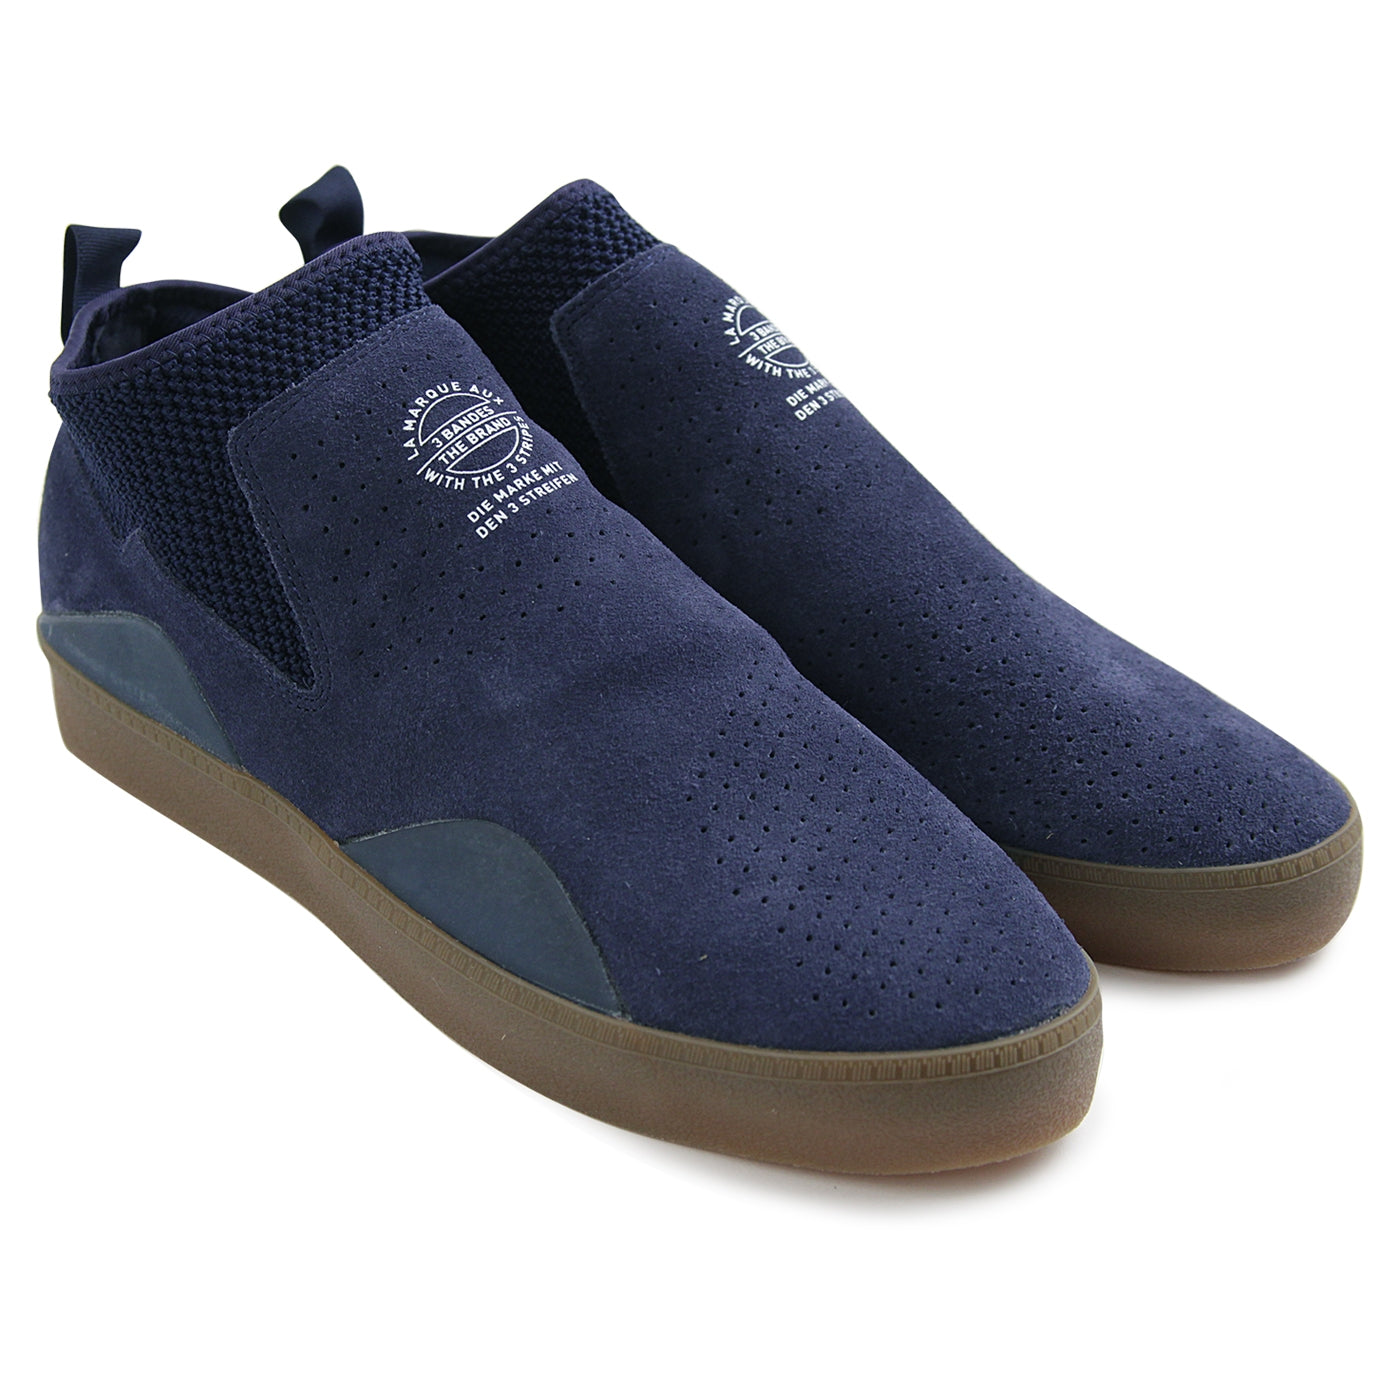 promo code 44a6a bc656 3ST.002 Shoes in Collegiate Navy  Footwear White  Gum by Adi